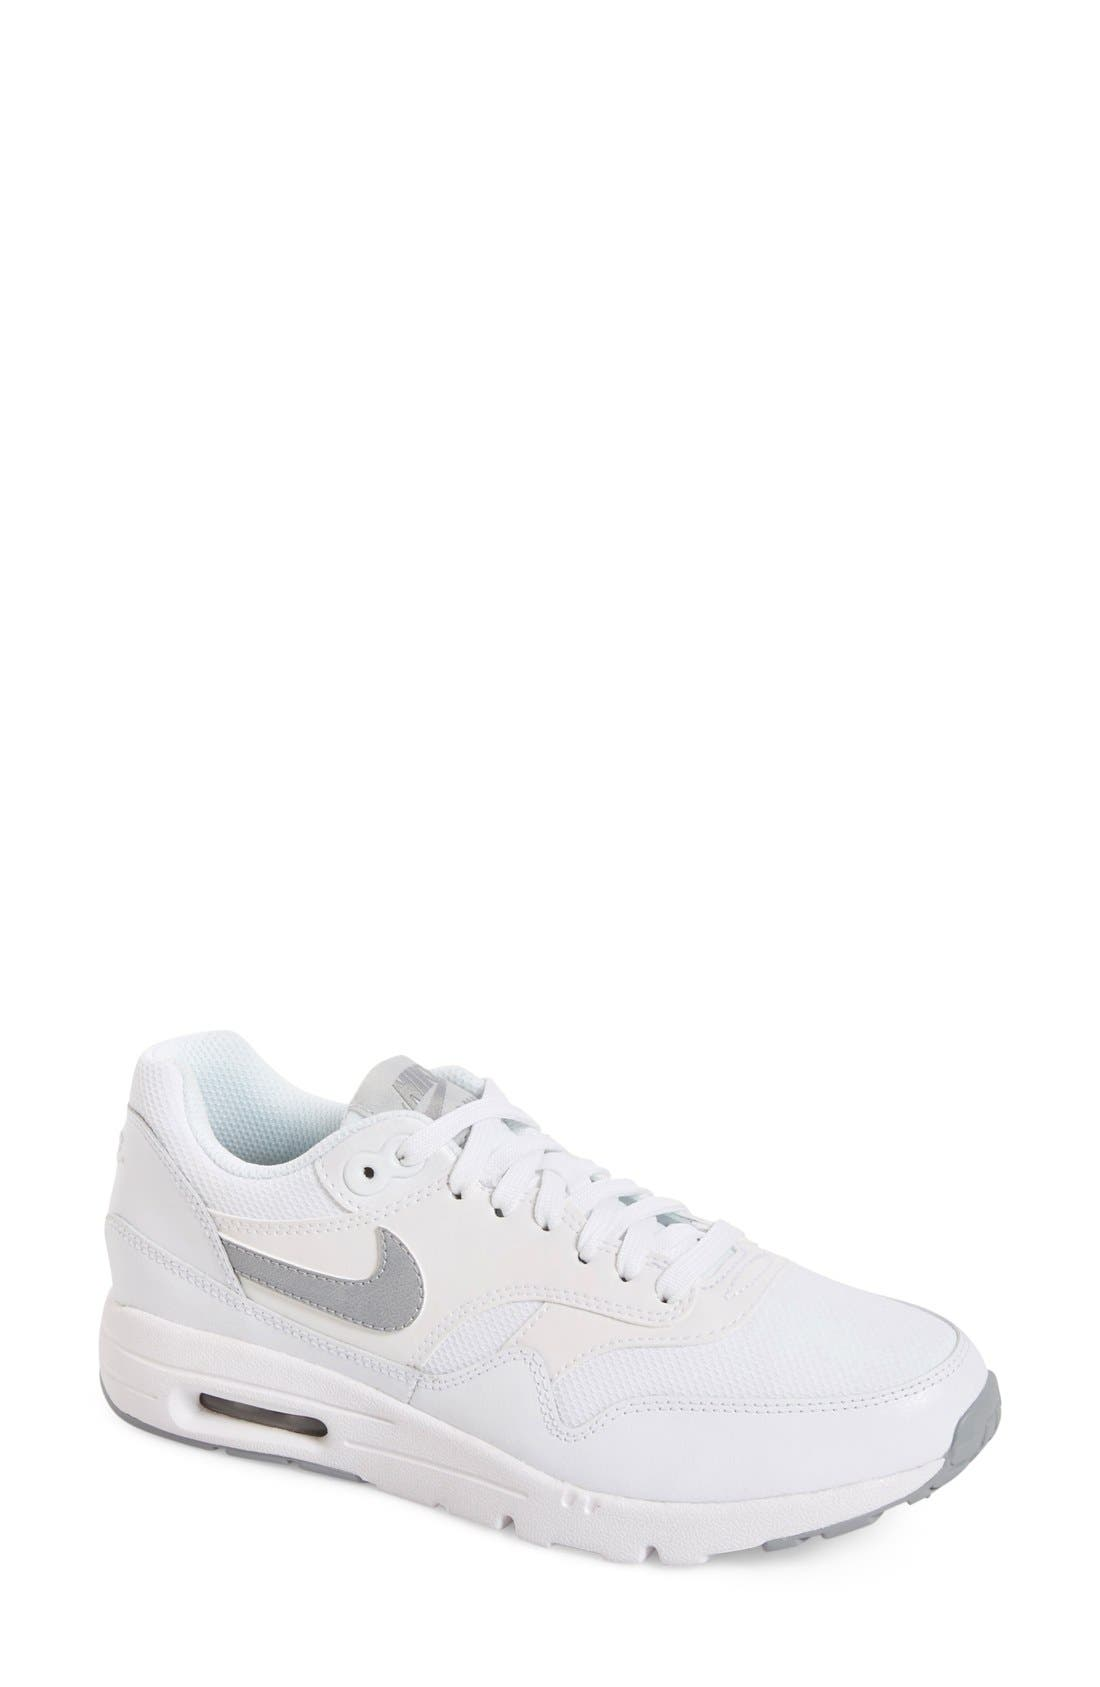 Main Image - Nike 'Air Max 1' Sneaker (Women)